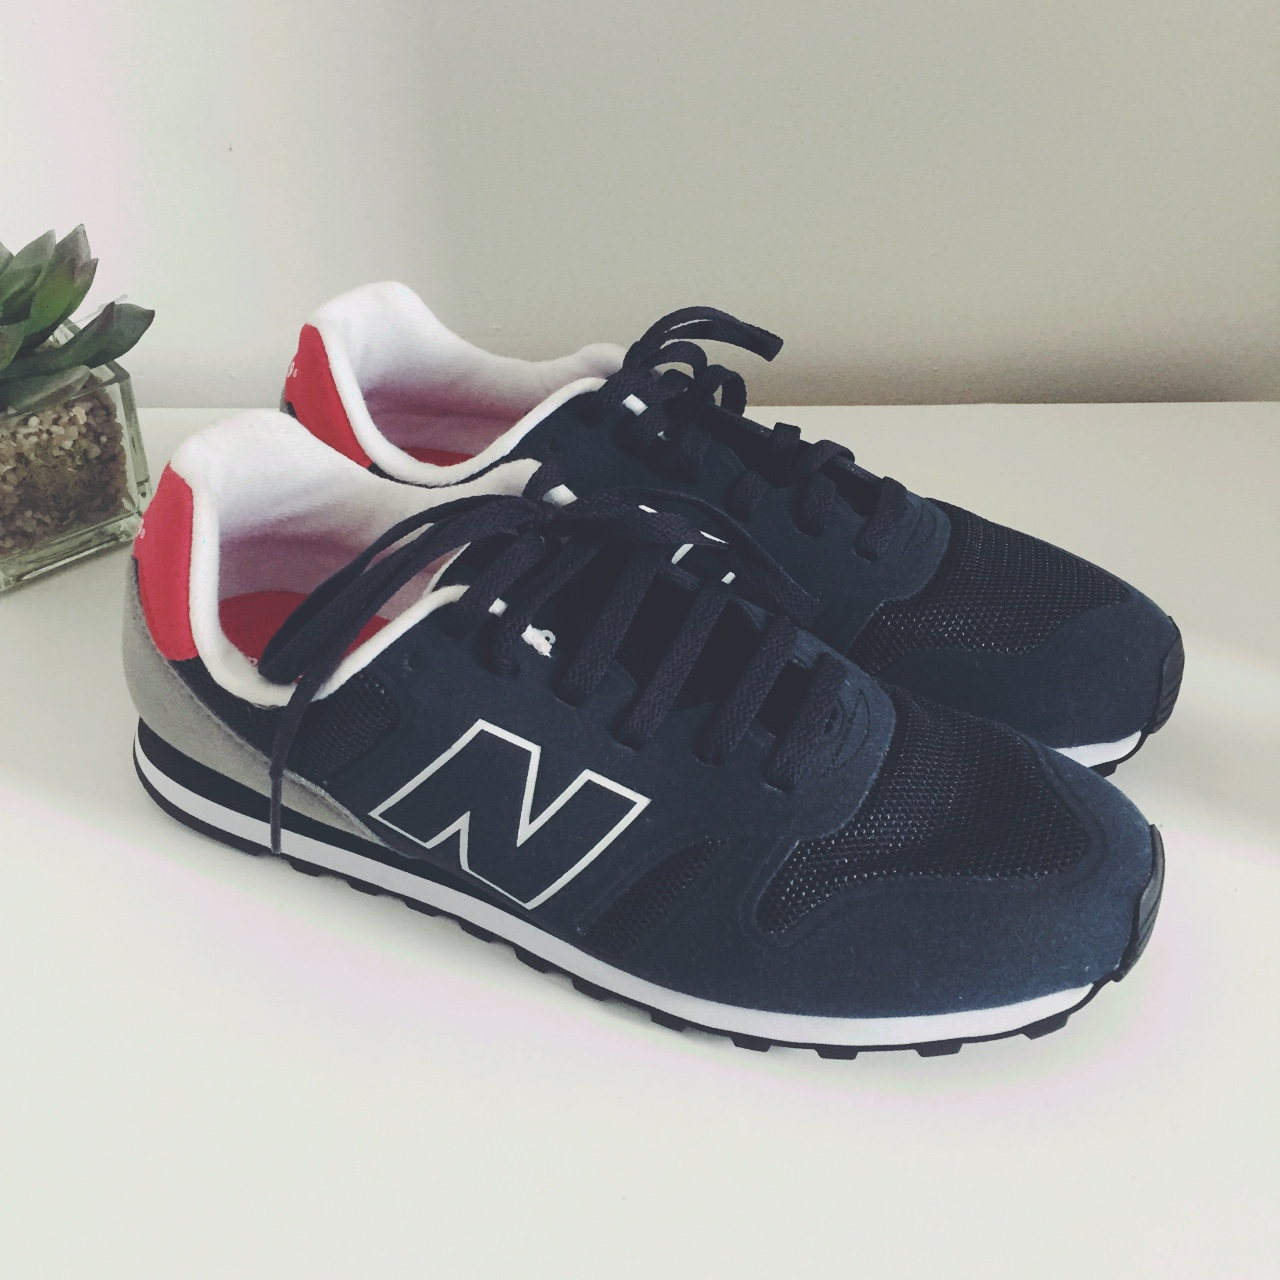 the latest c38a6 a8197 Men's UK 9/EU 43 New Balance 373 navy, red and grey ...